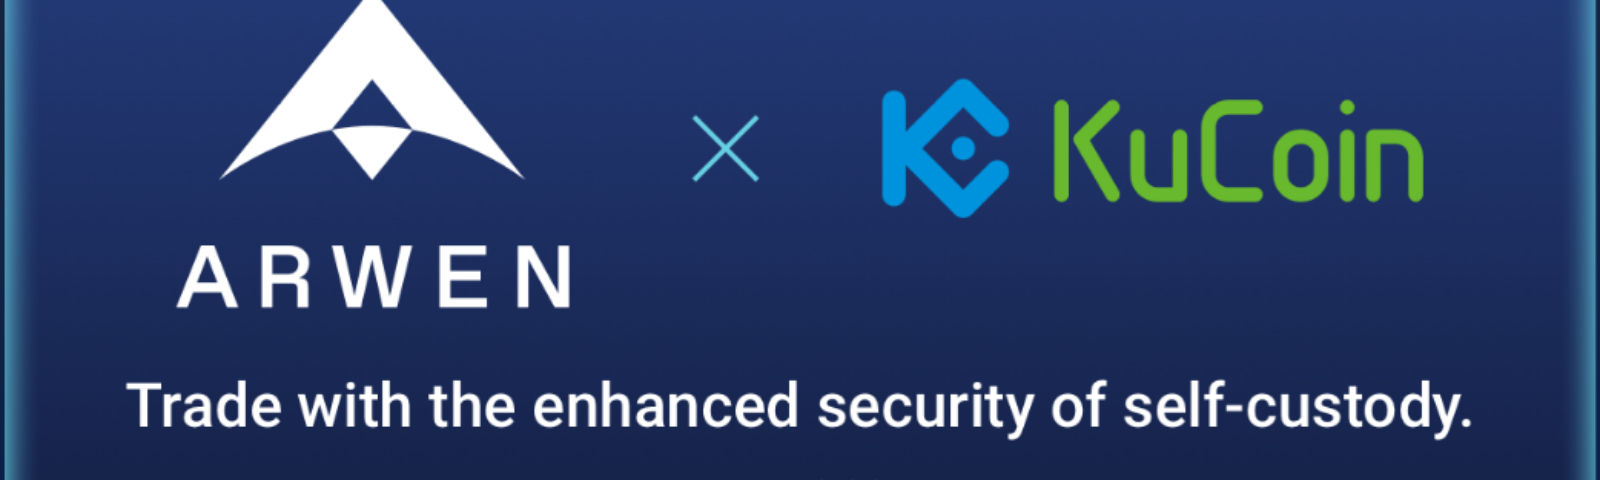 can us residents use kucoin to buy cryptocurrency